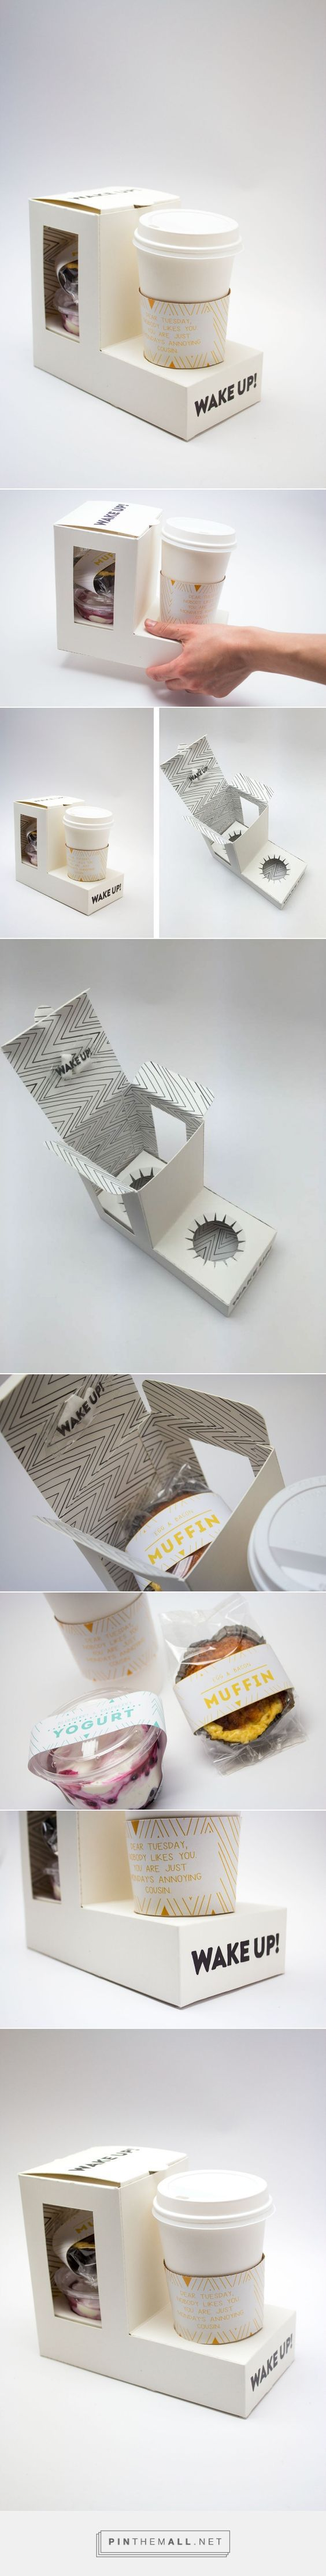 Wake Up Graphic Design | Packaging Design |